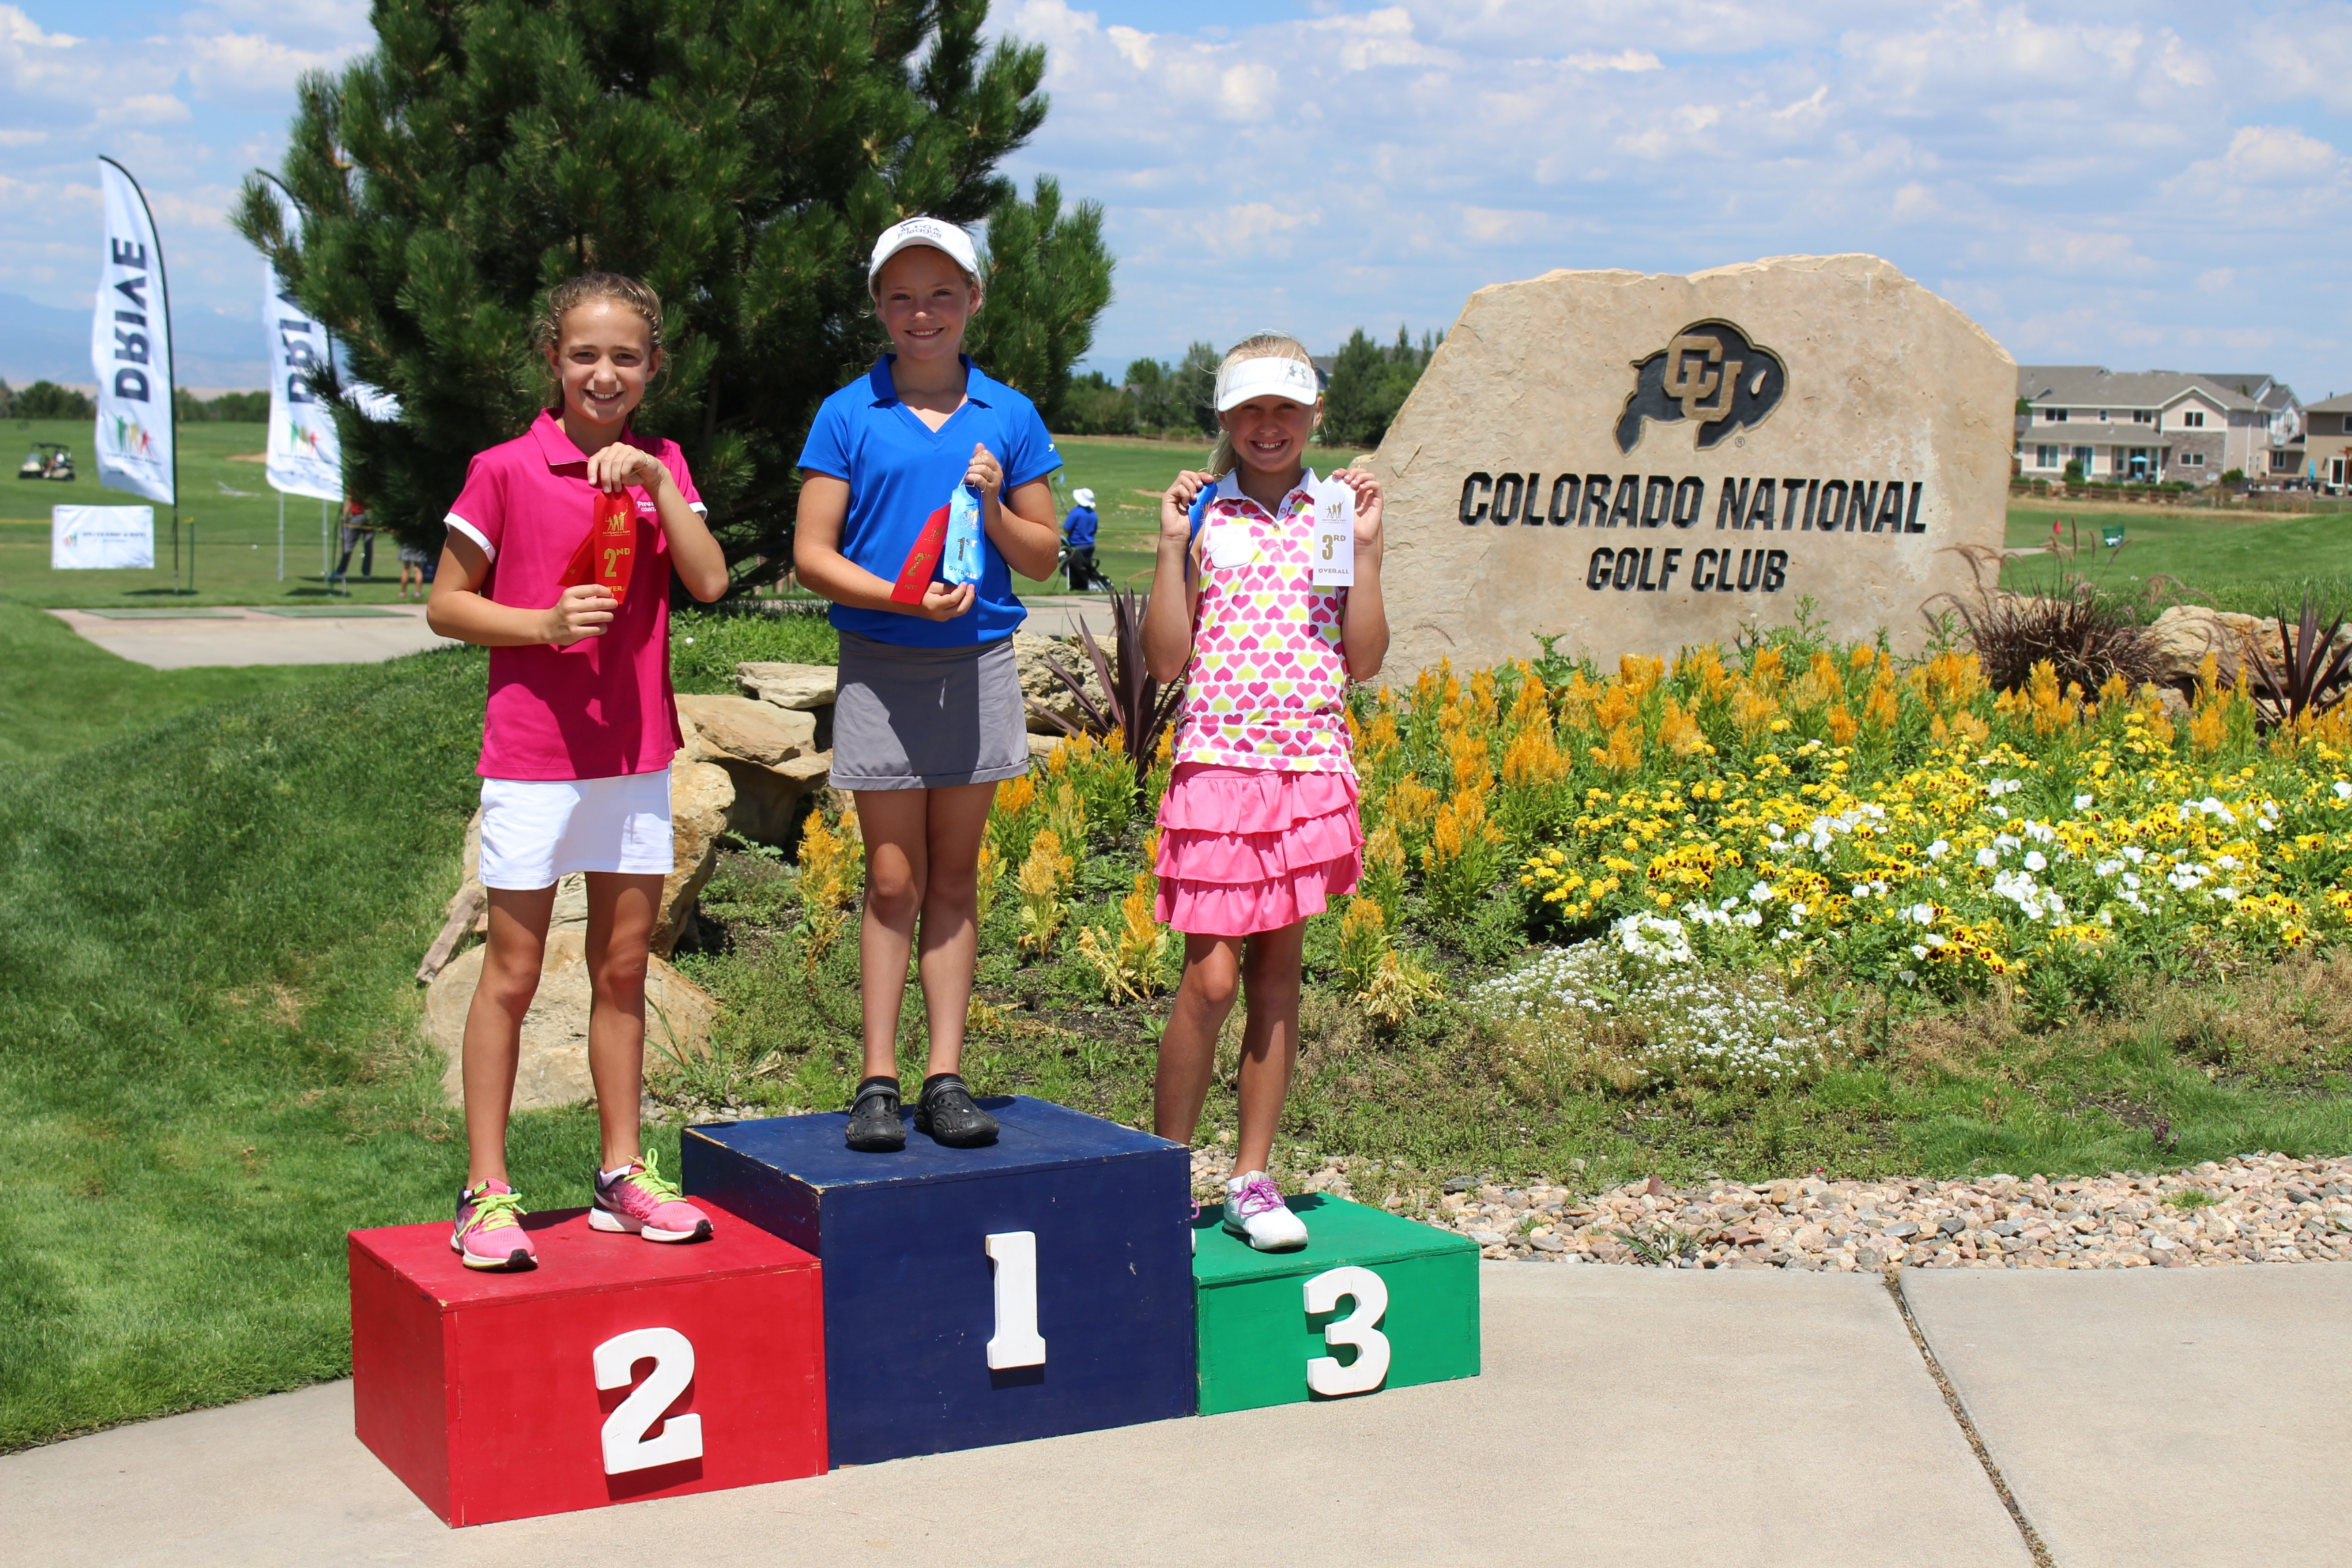 Colorado National Golf Club Hosts Drive Chip and Putt Qualifier